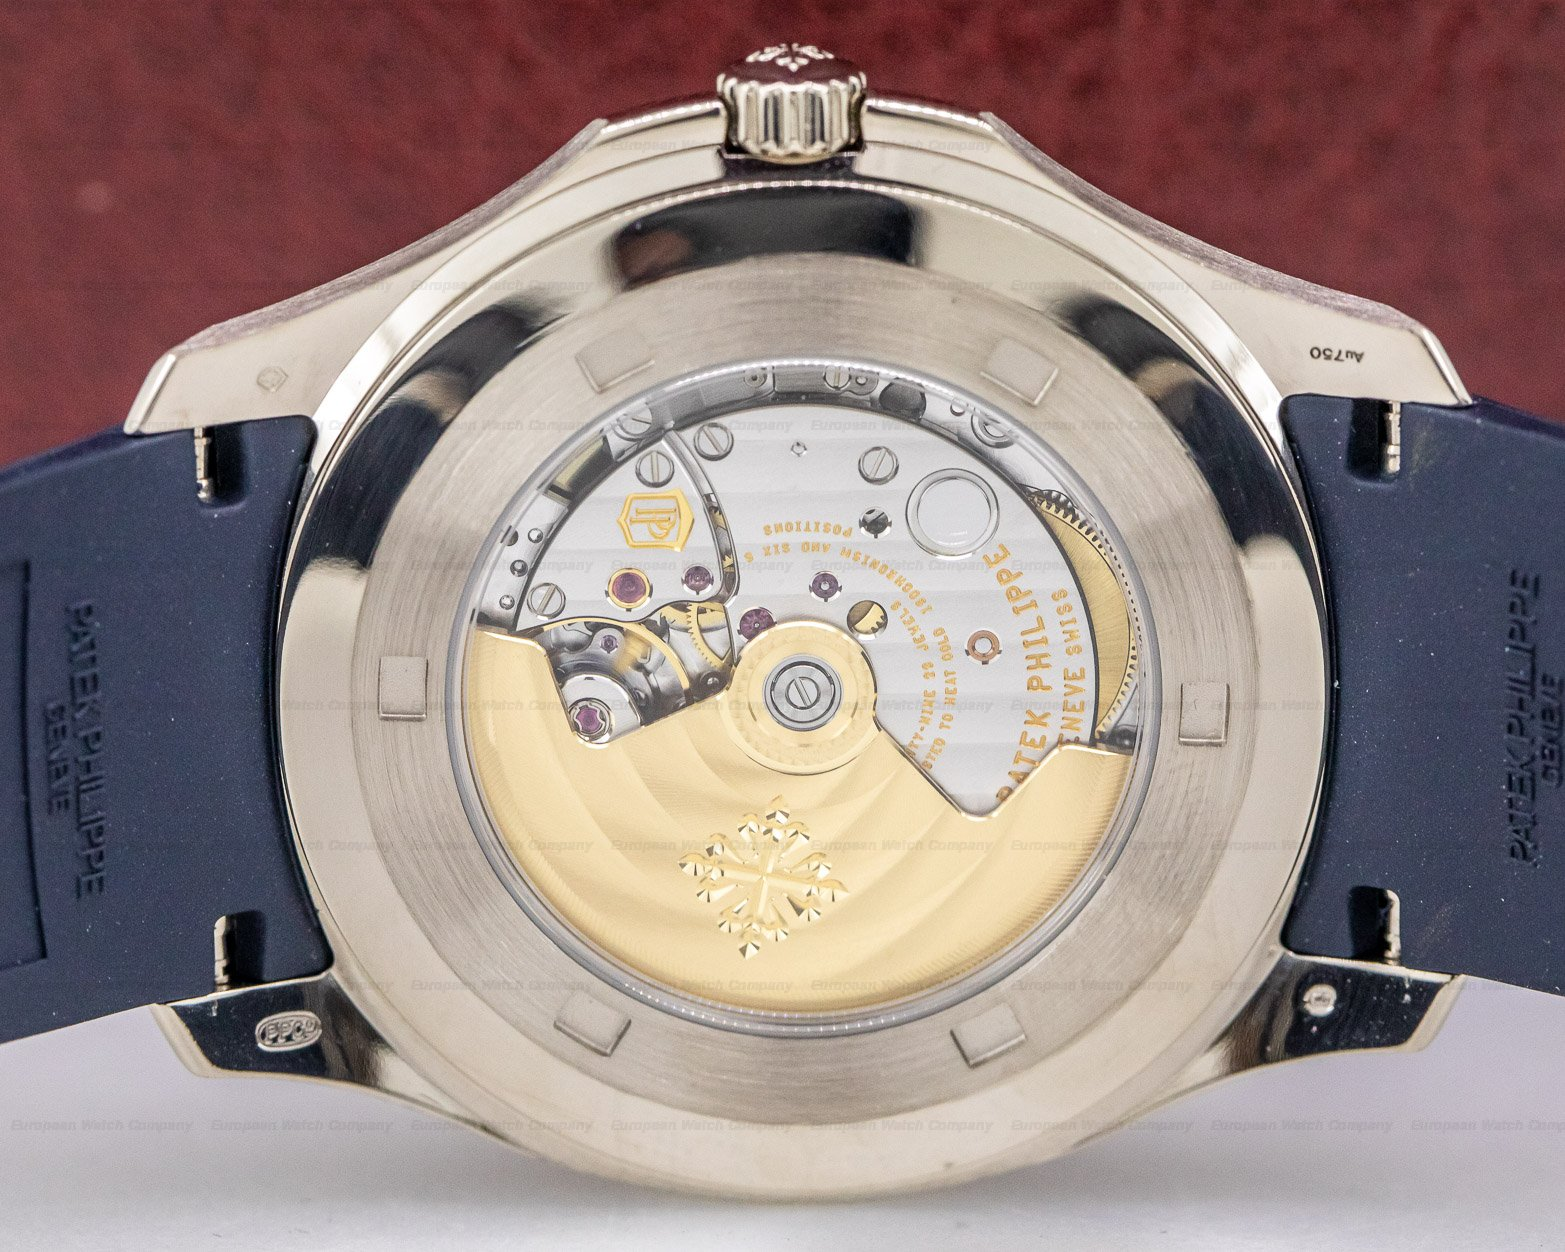 Patek Philippe 5168G-001 Aquanaut 18K White Gold / Blue Dial